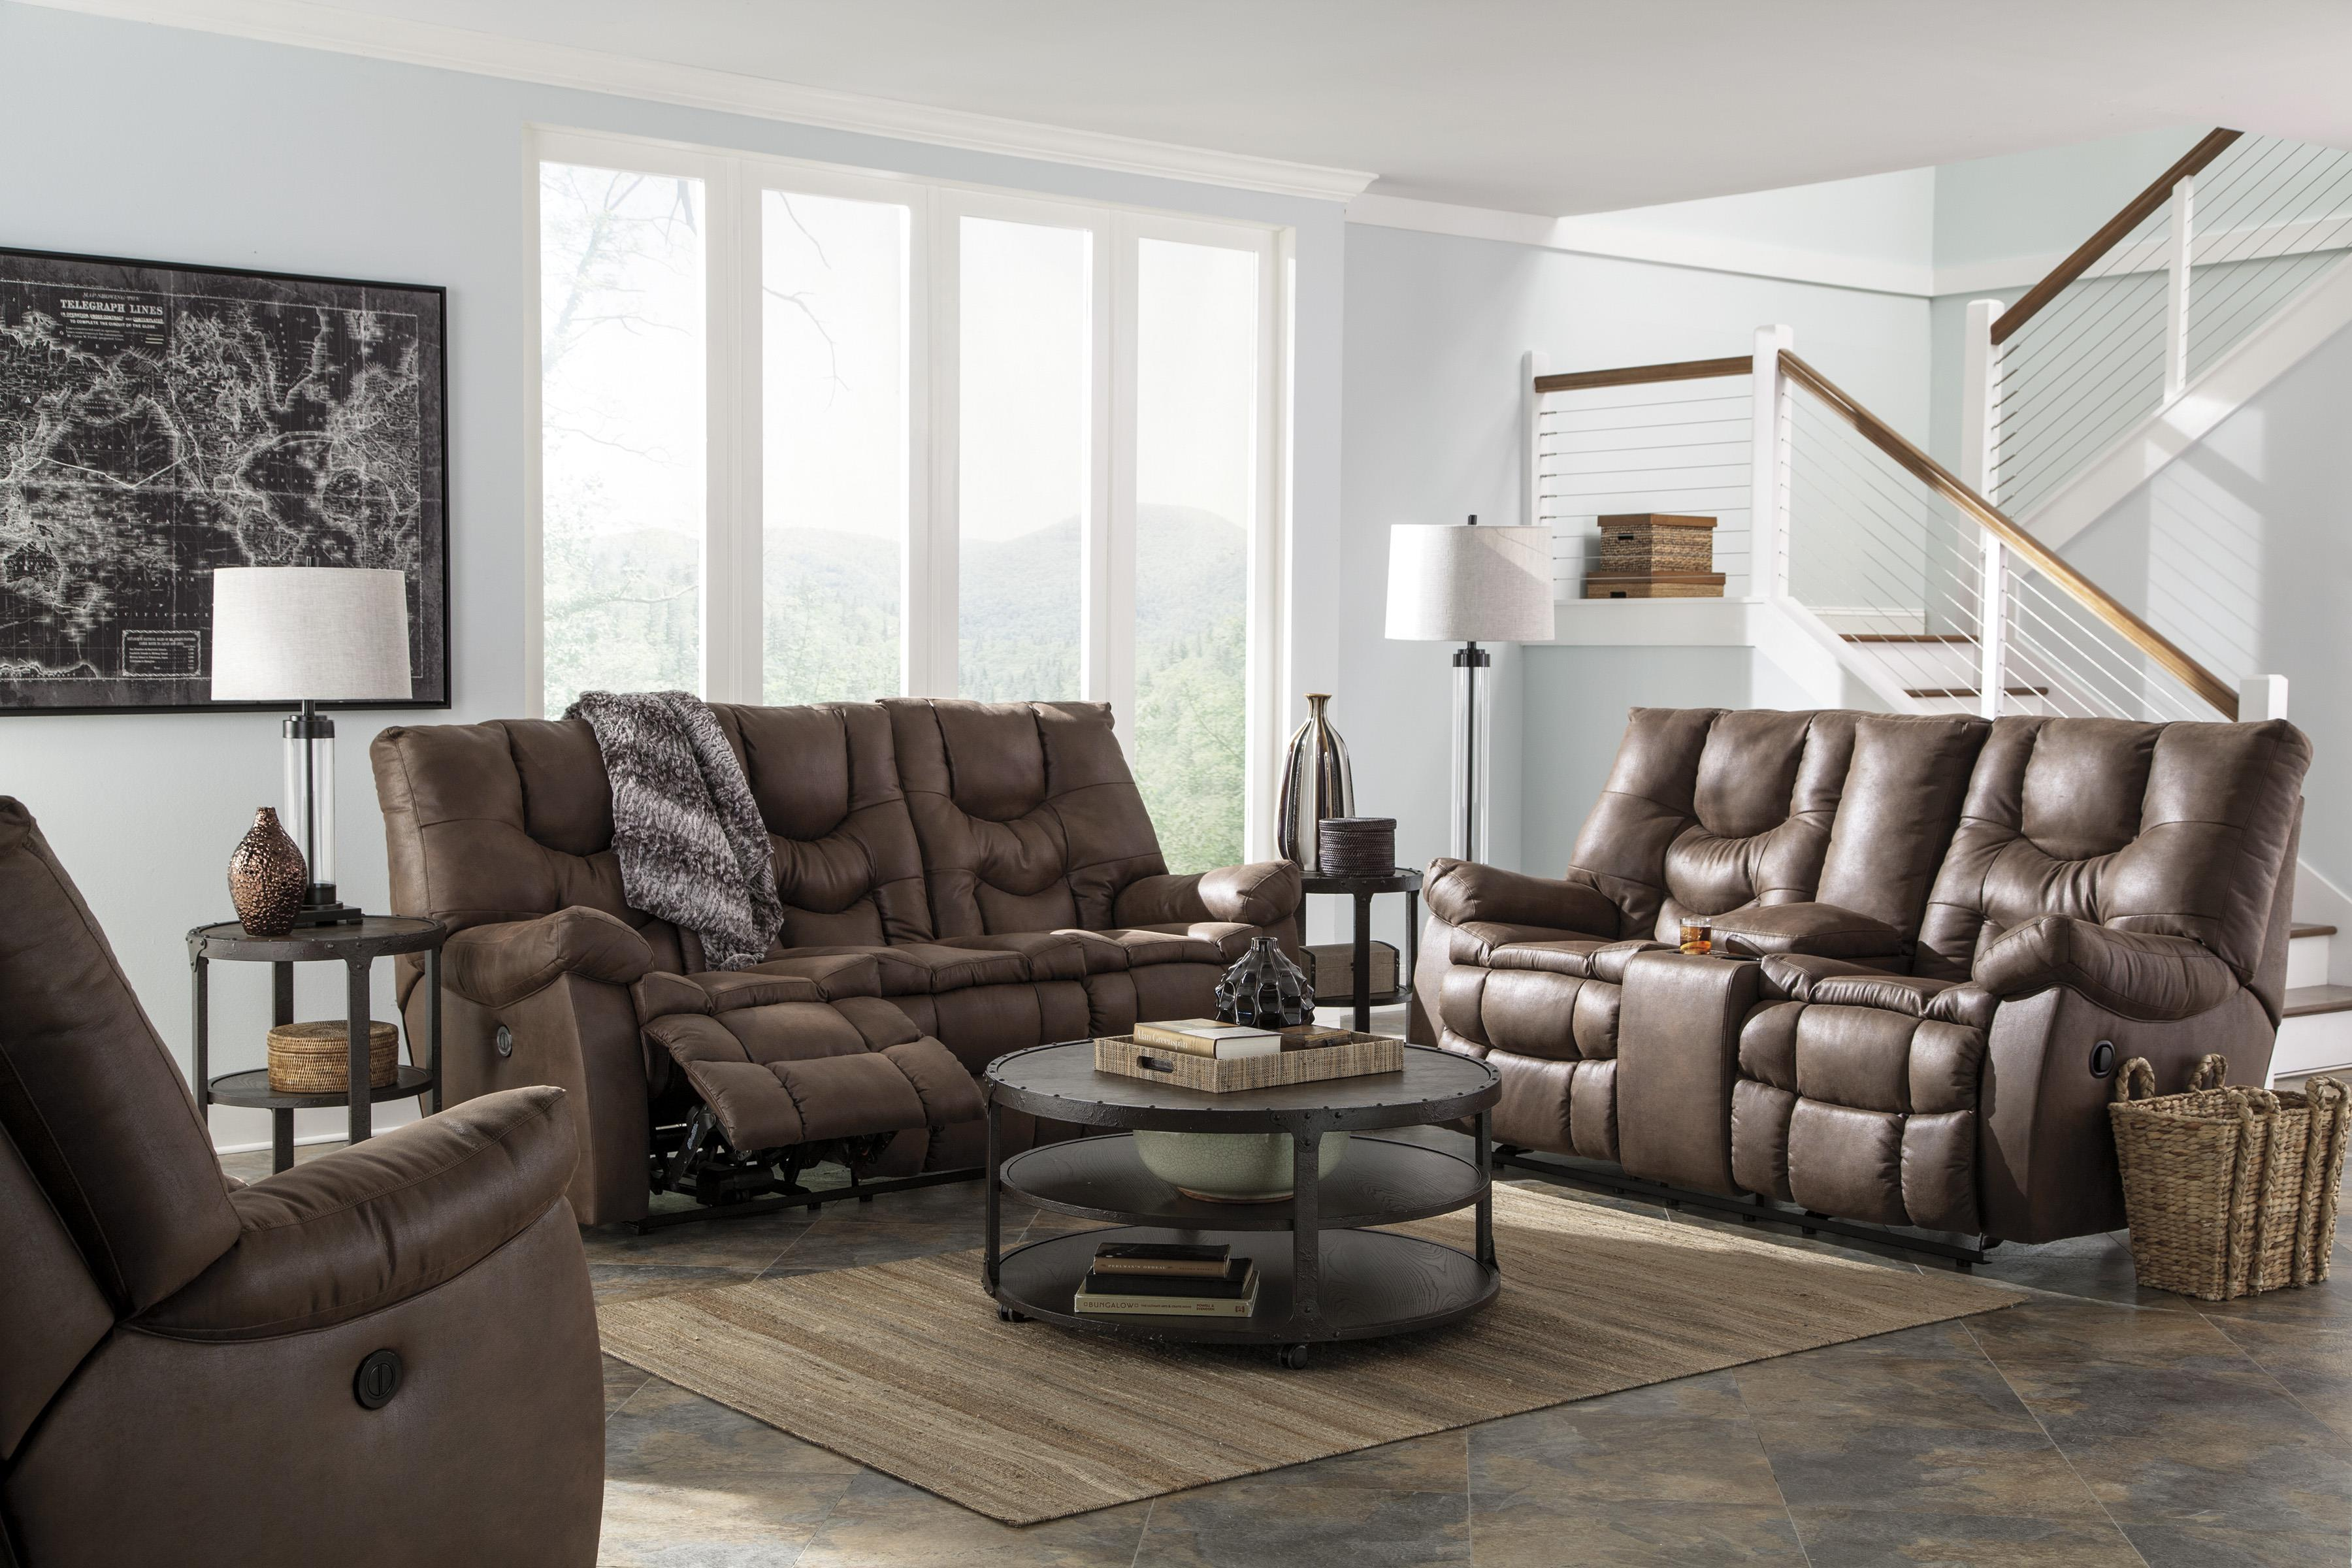 Benchcraft Burgett Reclining Living Room Group - Item Number: 92201 Living Room Group 4